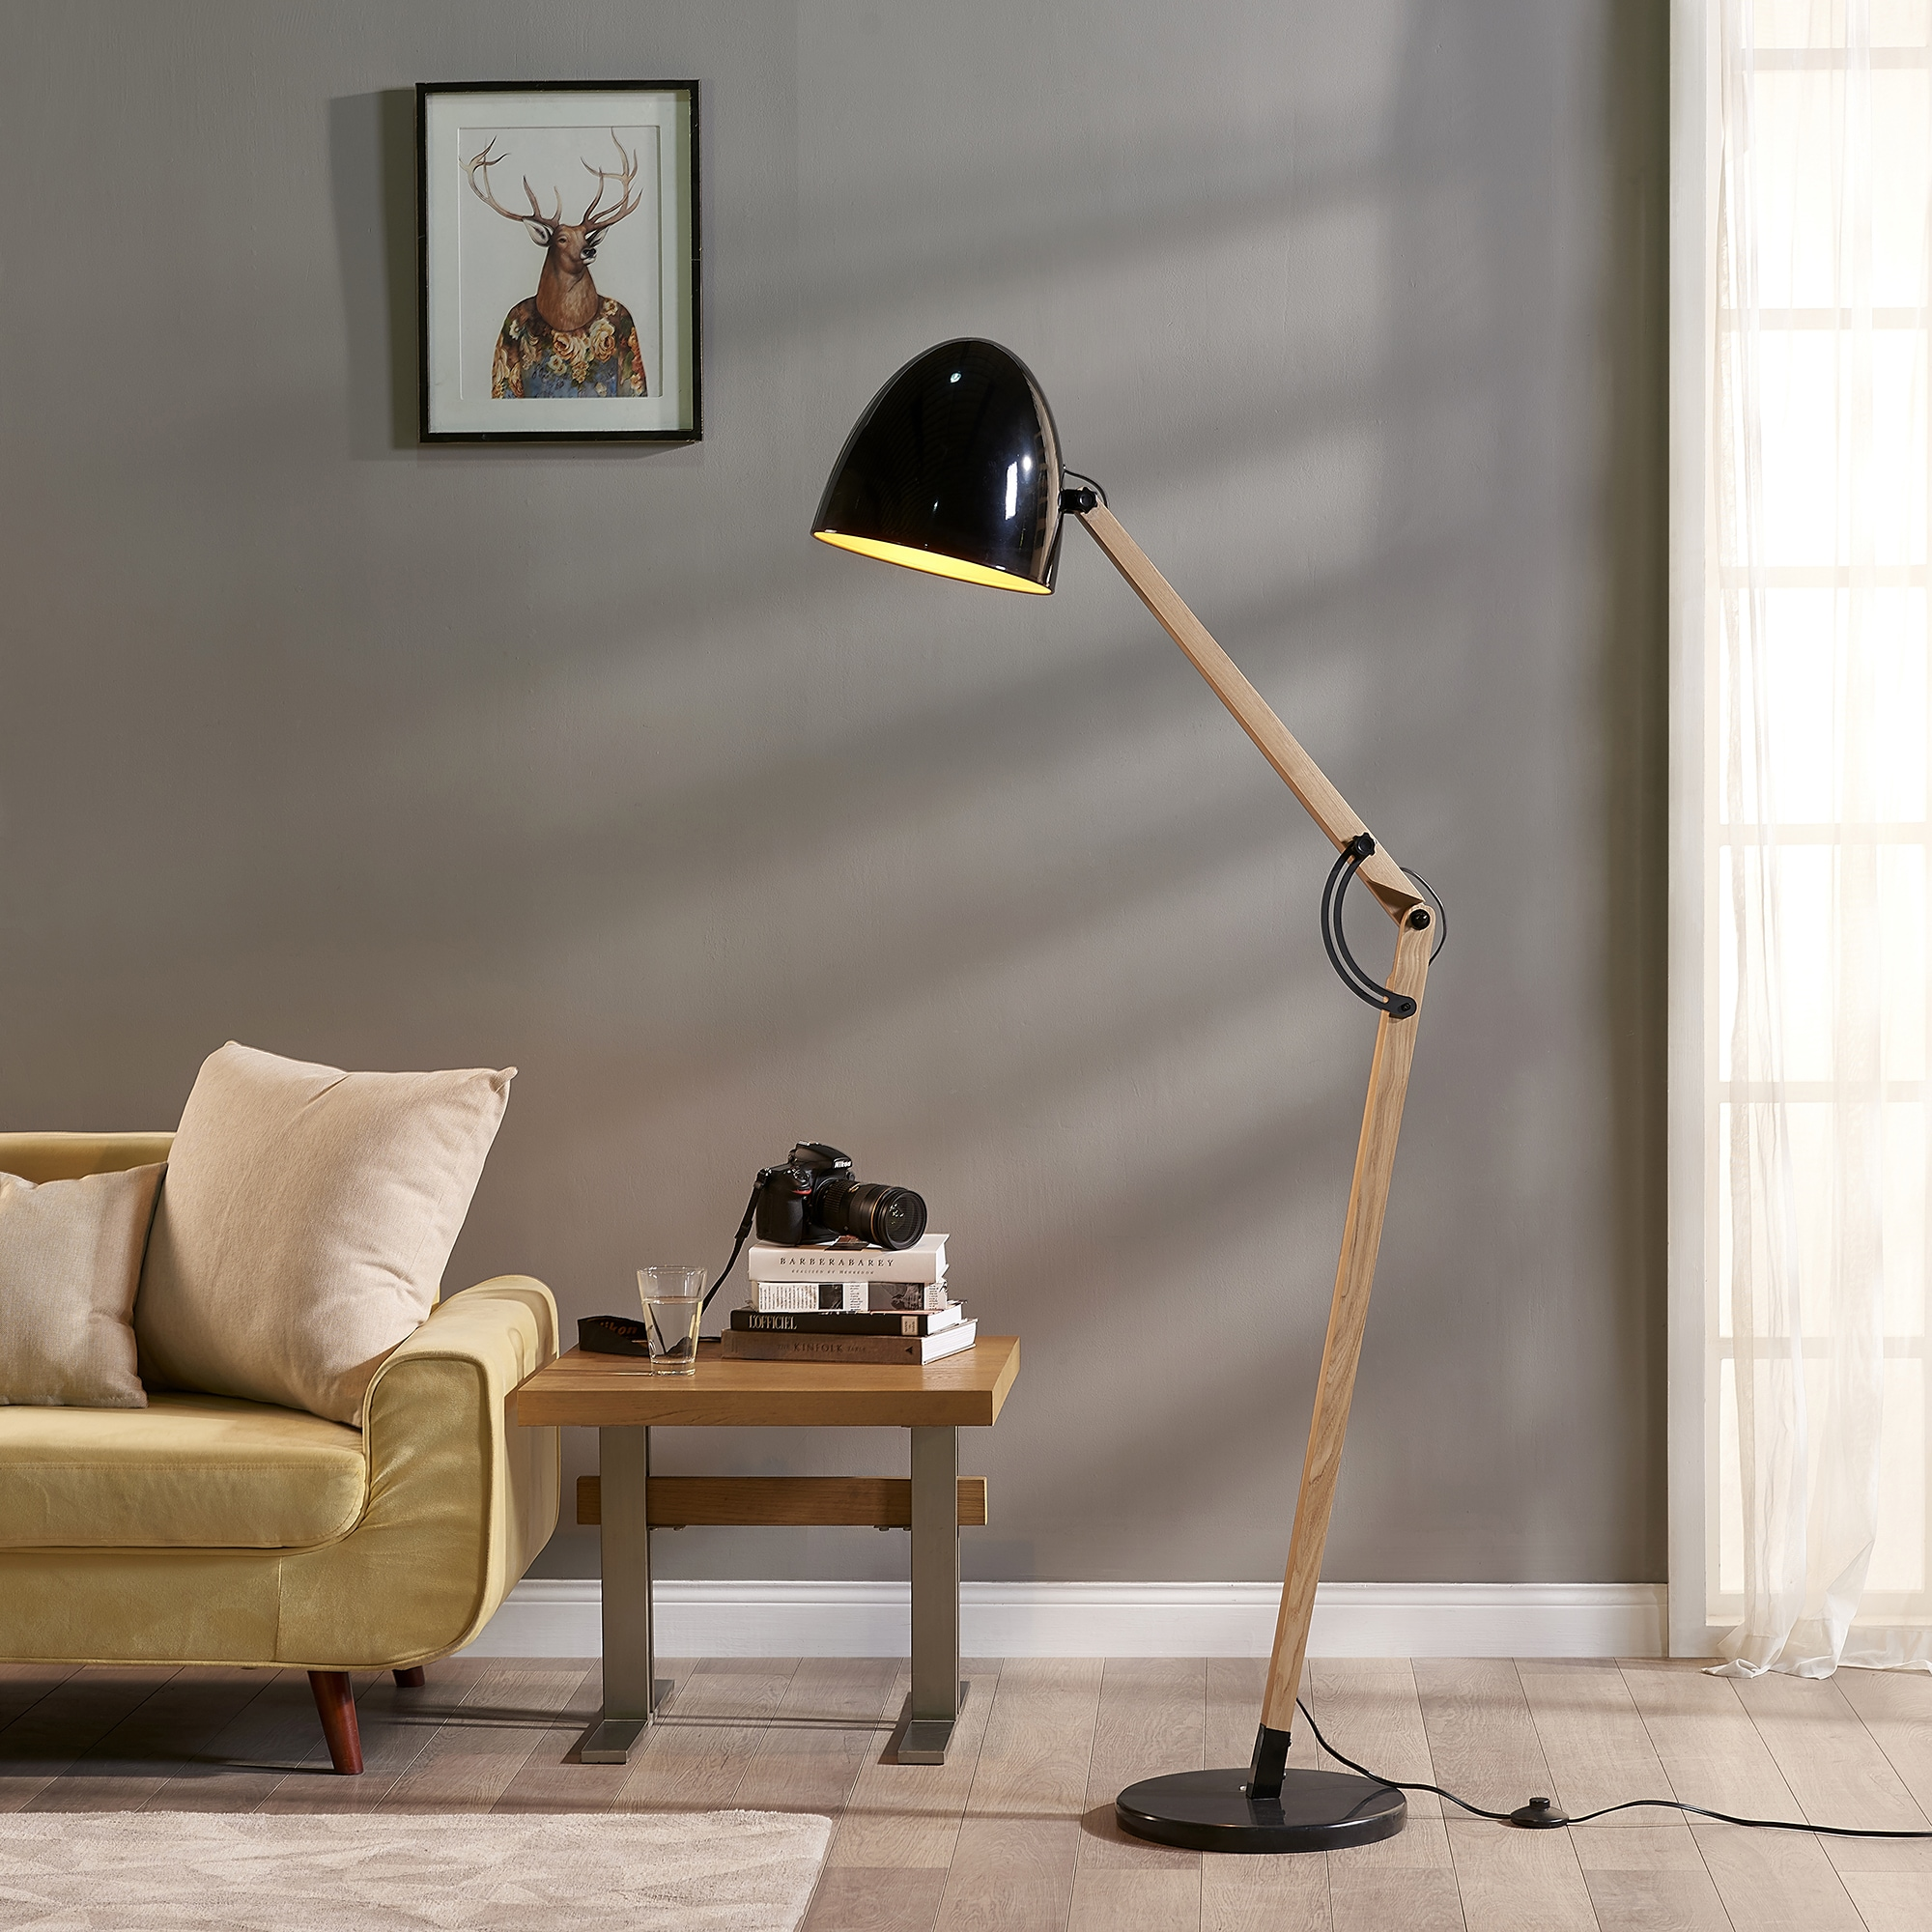 Teamson versanora bastone wooden floor lamp with black shade teamson versanora bastone wooden floor lamp with black shade free shipping today overstock 19604310 aloadofball Choice Image